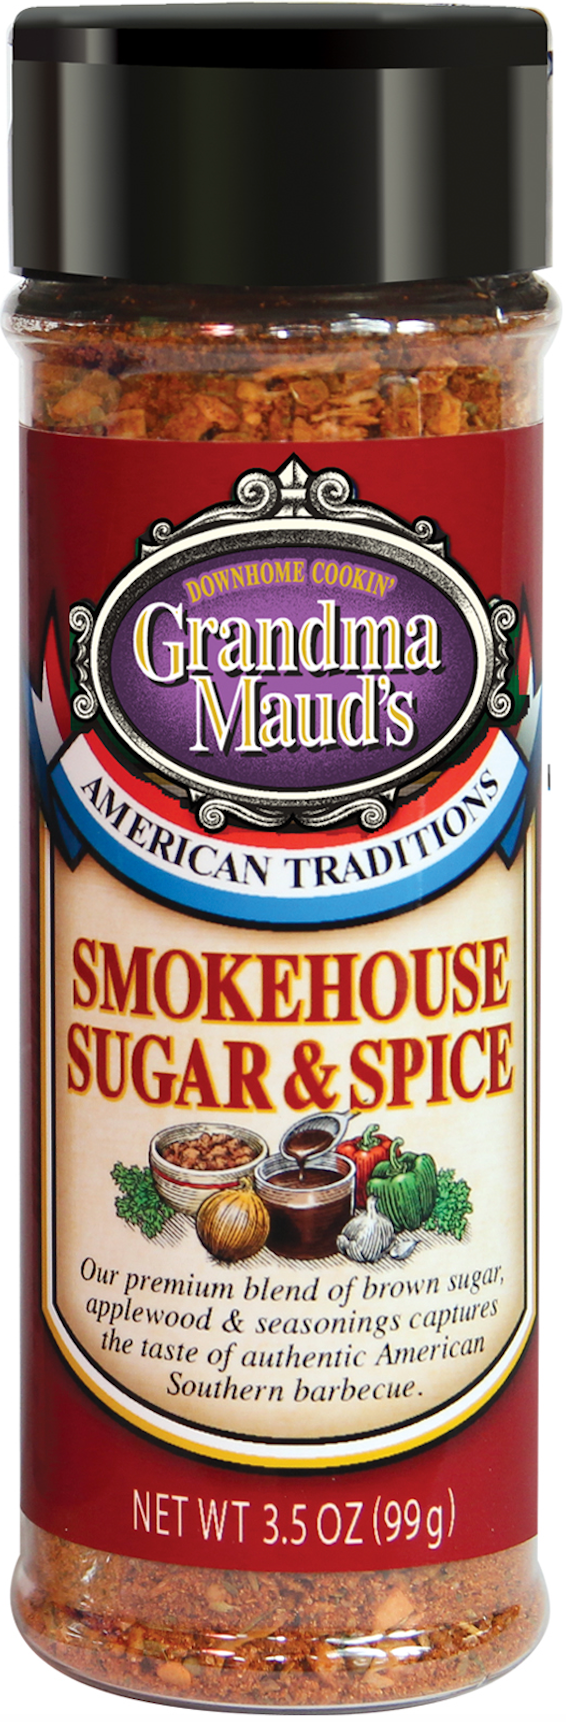 Smokehouse Sugar & Spice